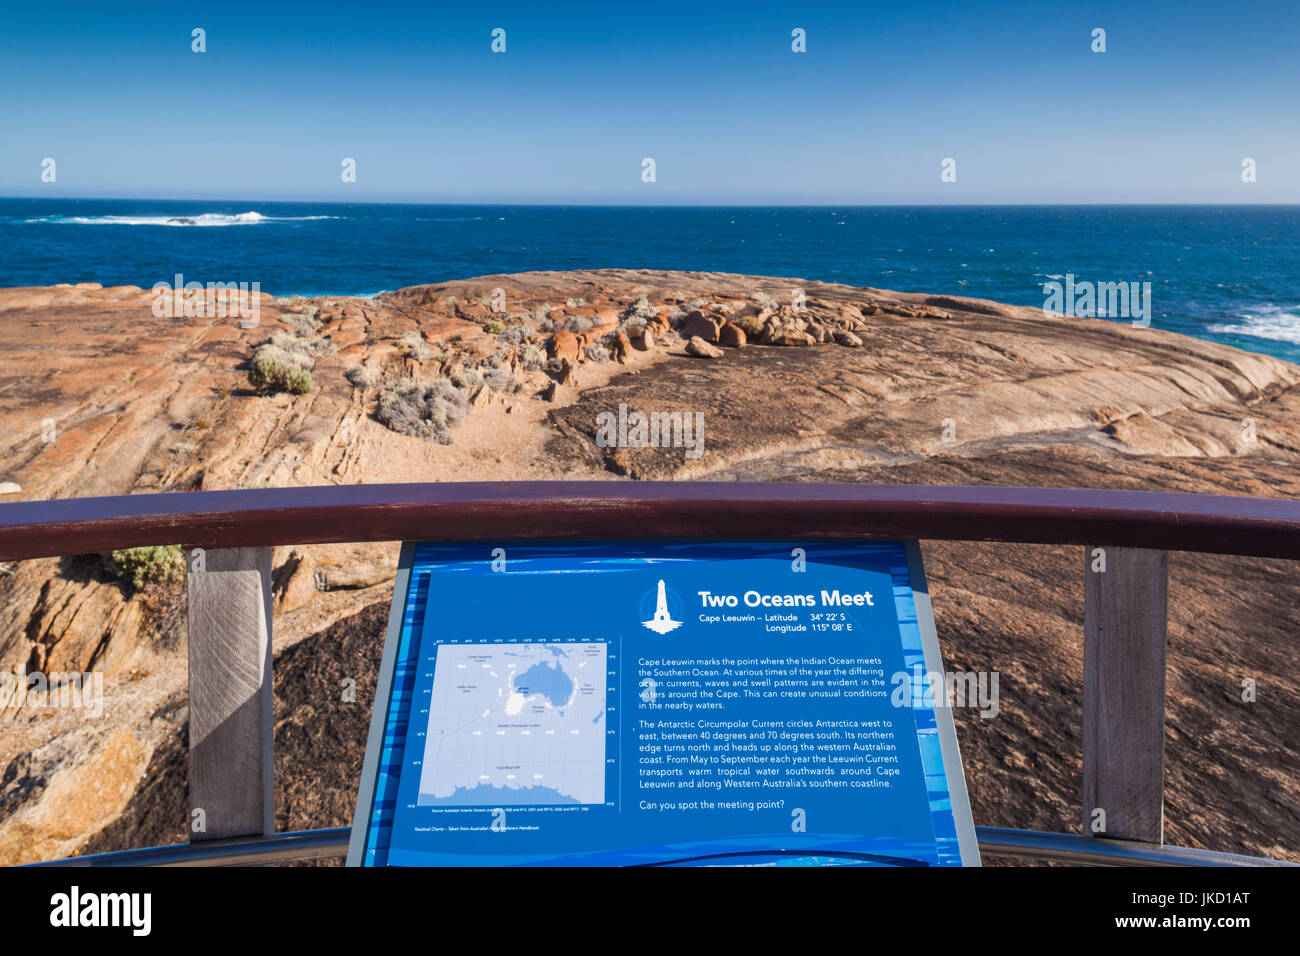 Australia, Western Australia, The Southwest, Cape Leeuwin, meeting point of the Southern and Indian Oceans - Stock Image